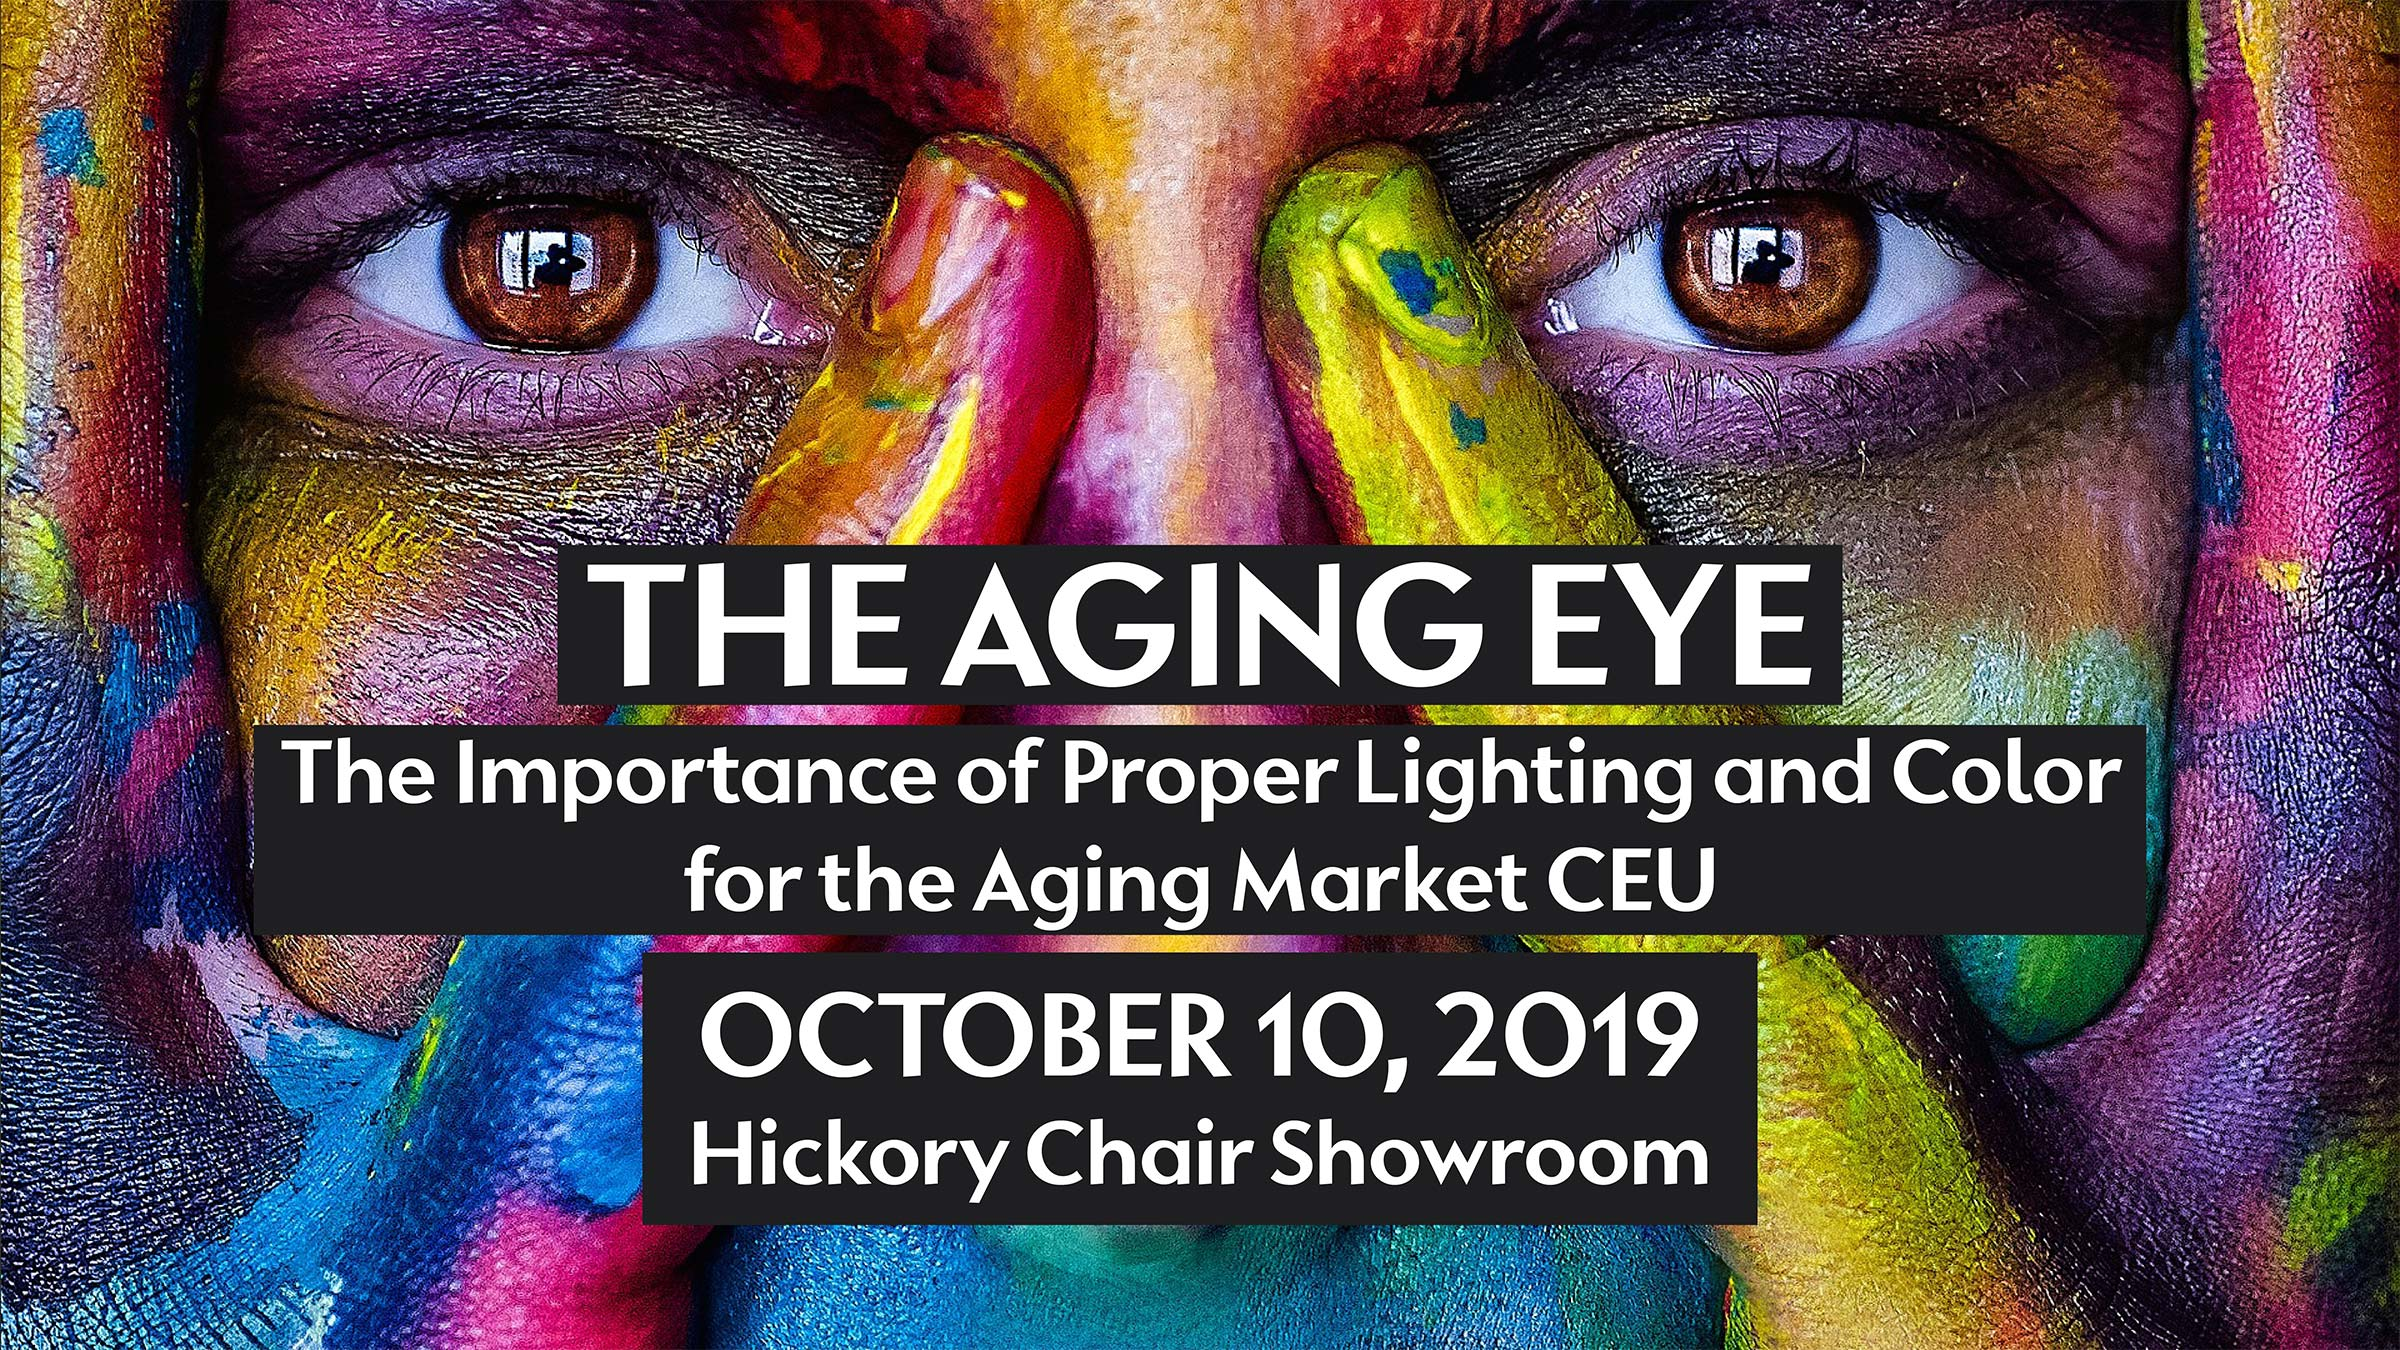 The Aging Eye CEU at IDS Hickory Chair Showroom on October 10, 2019.